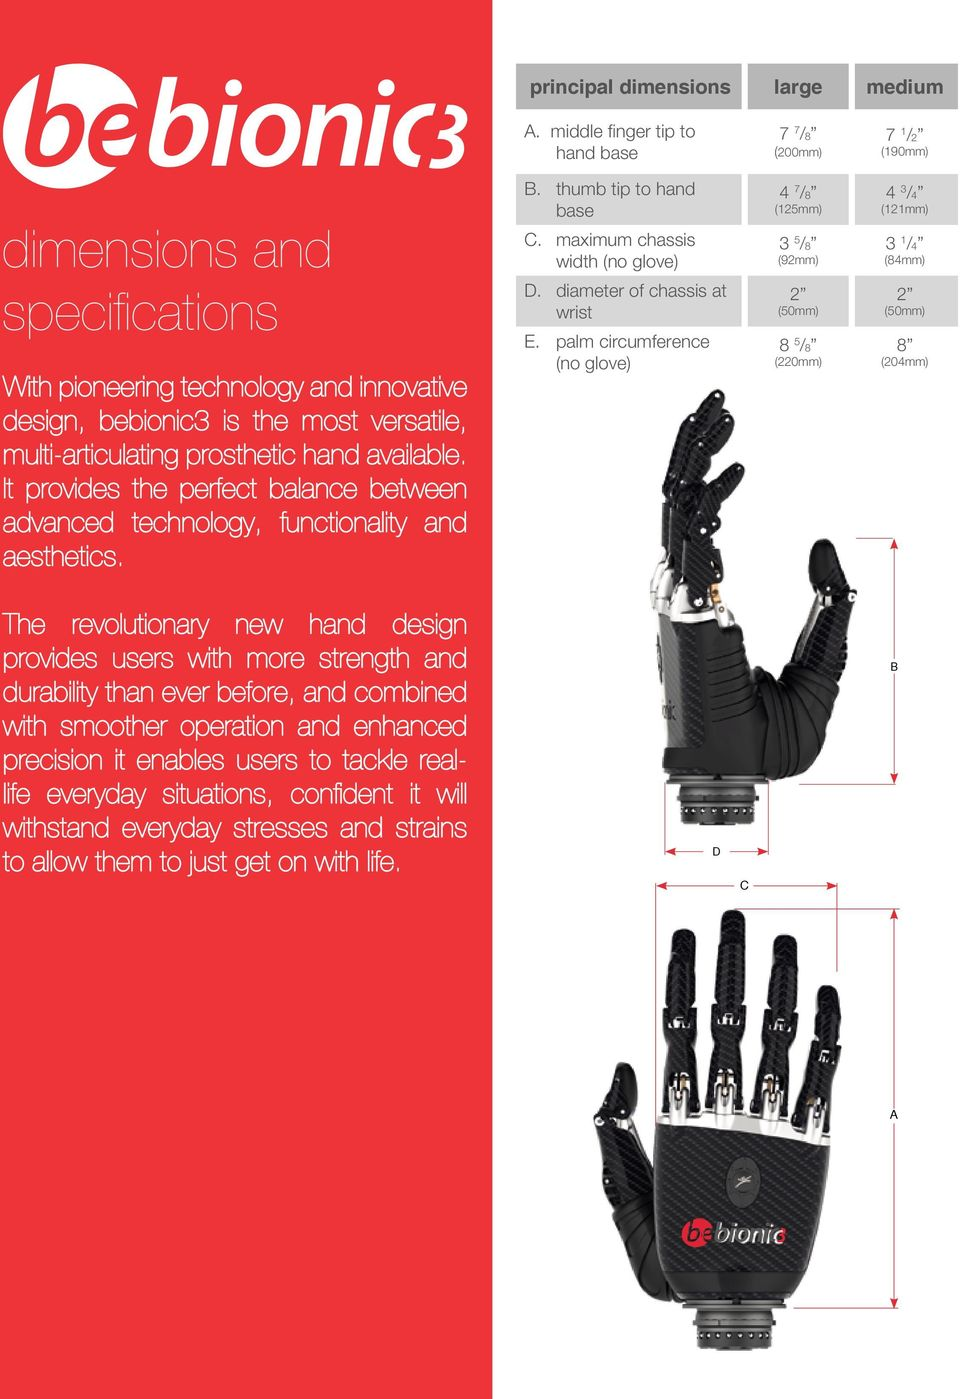 prosthetic hand available. It provides the perfect balance between advanced technology, functionality and aesthetics. B. thumb tip to hand base C. maximum chassis width (no glove) D.